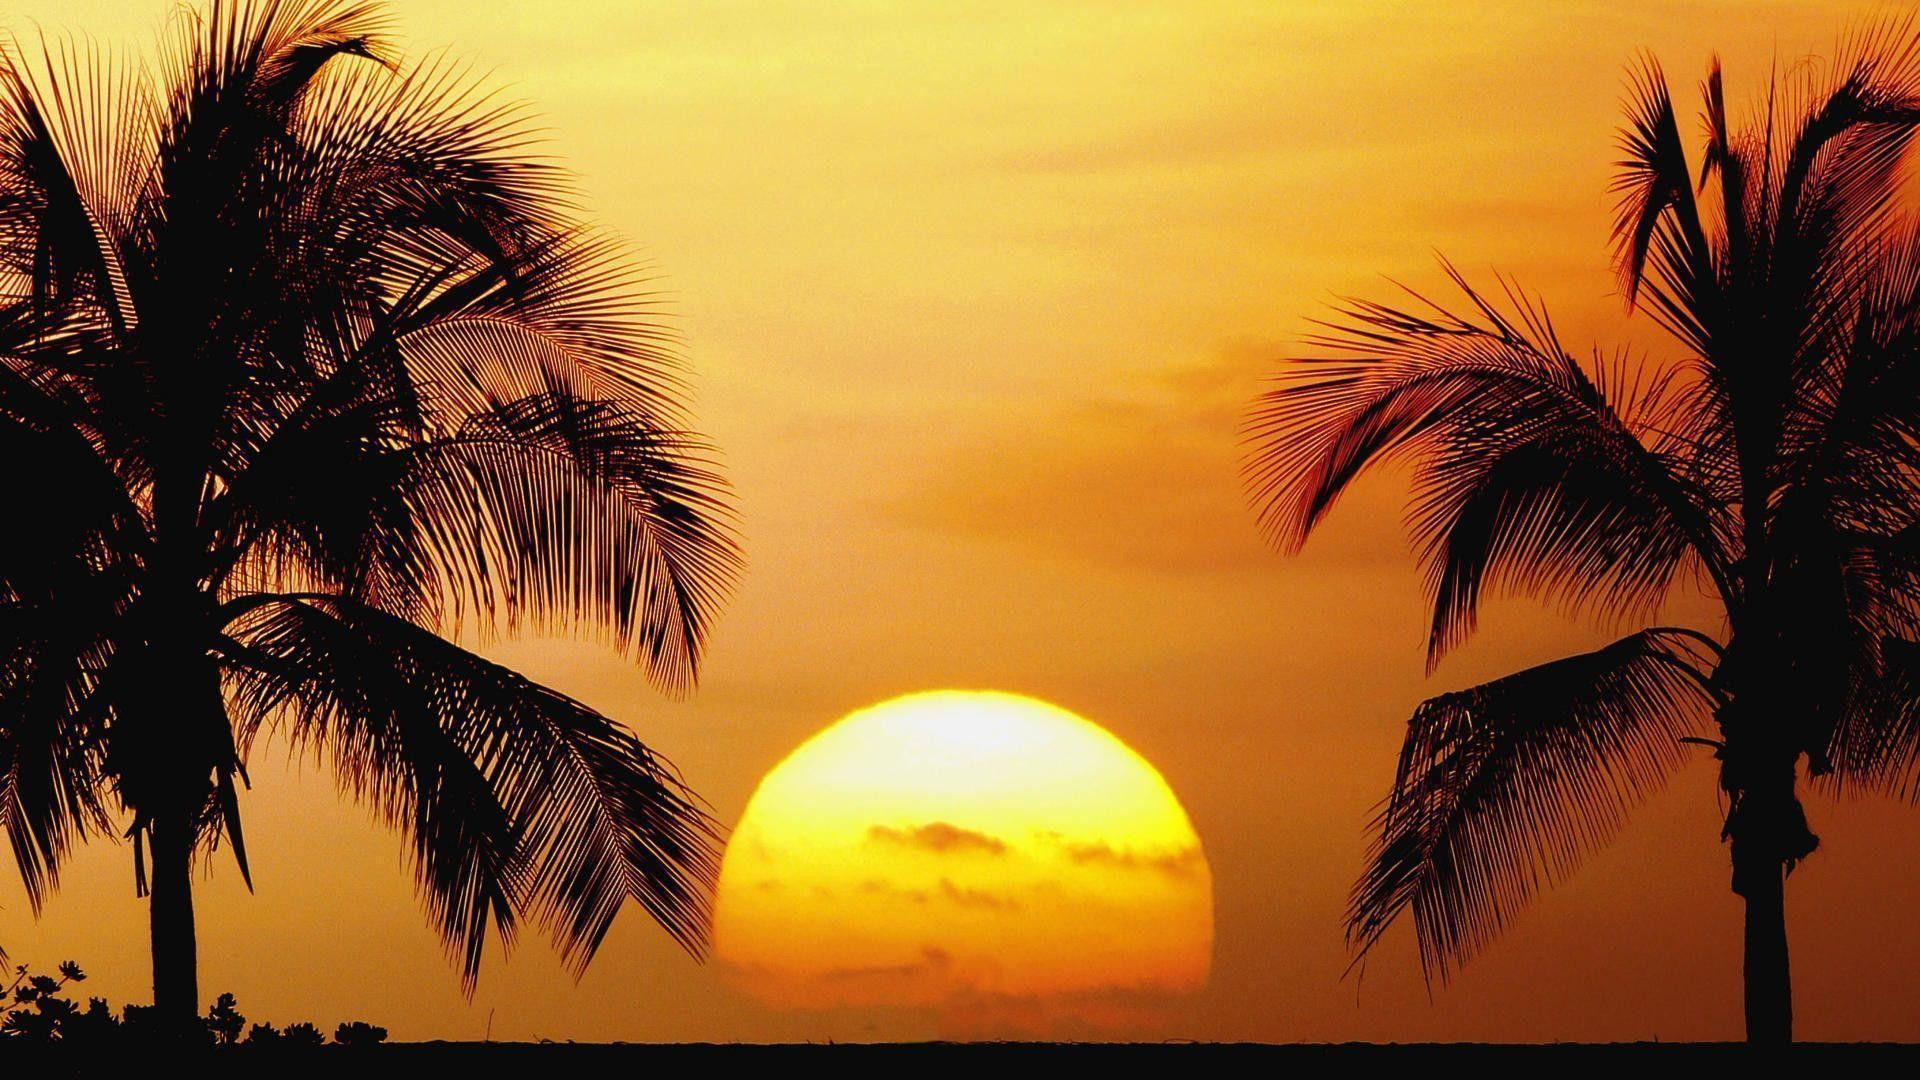 Background Sunset Palm Tree Picture